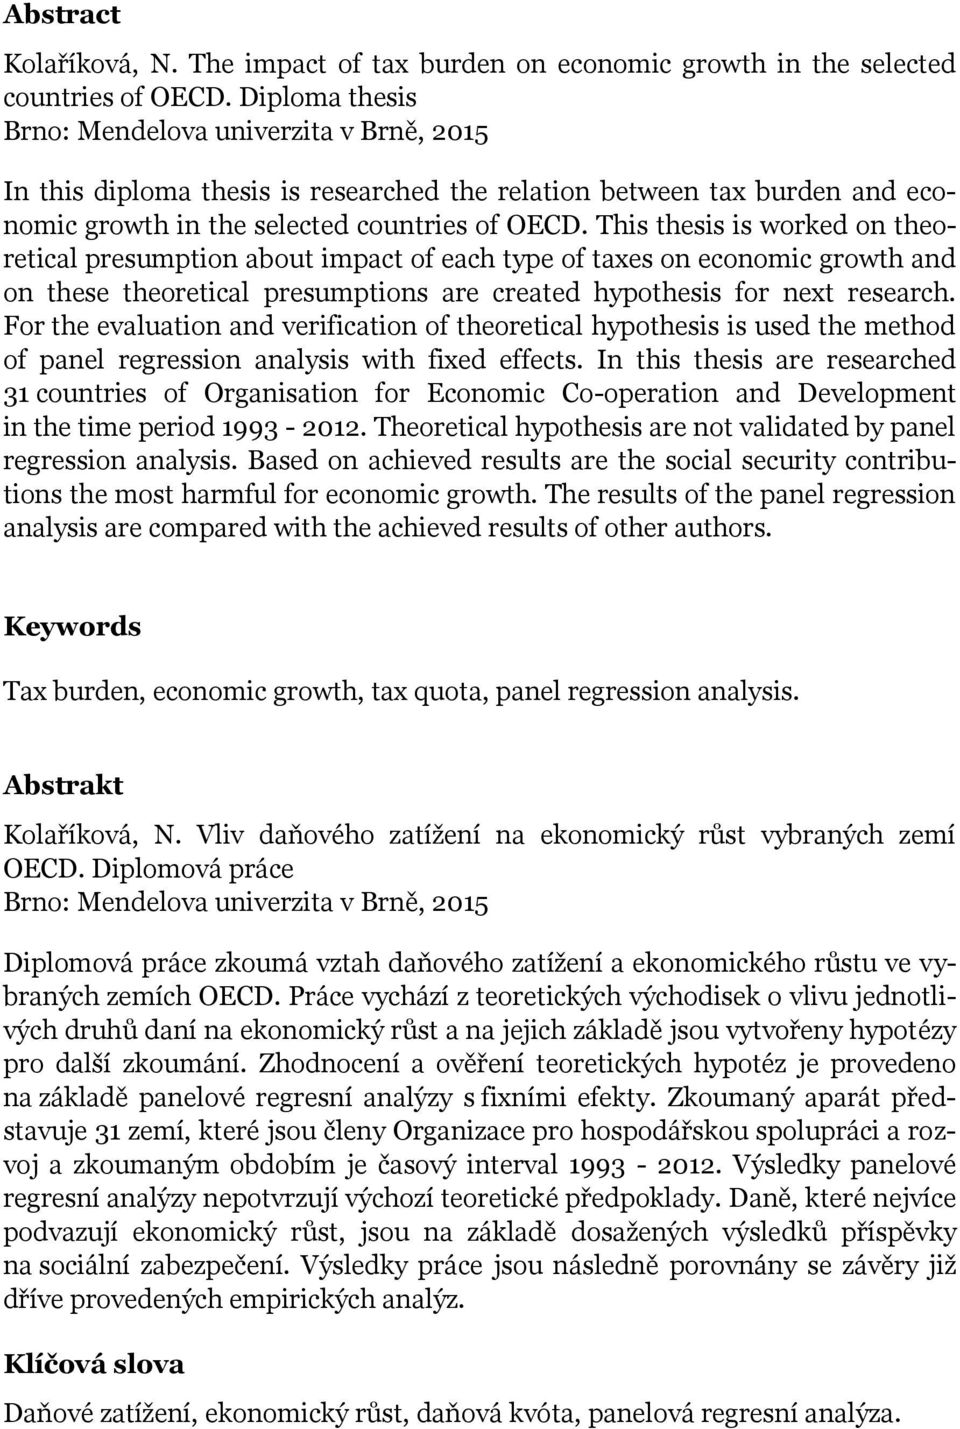 This thesis is worked on theoretical presumption about impact of each type of taxes on economic growth and on these theoretical presumptions are created hypothesis for next research.